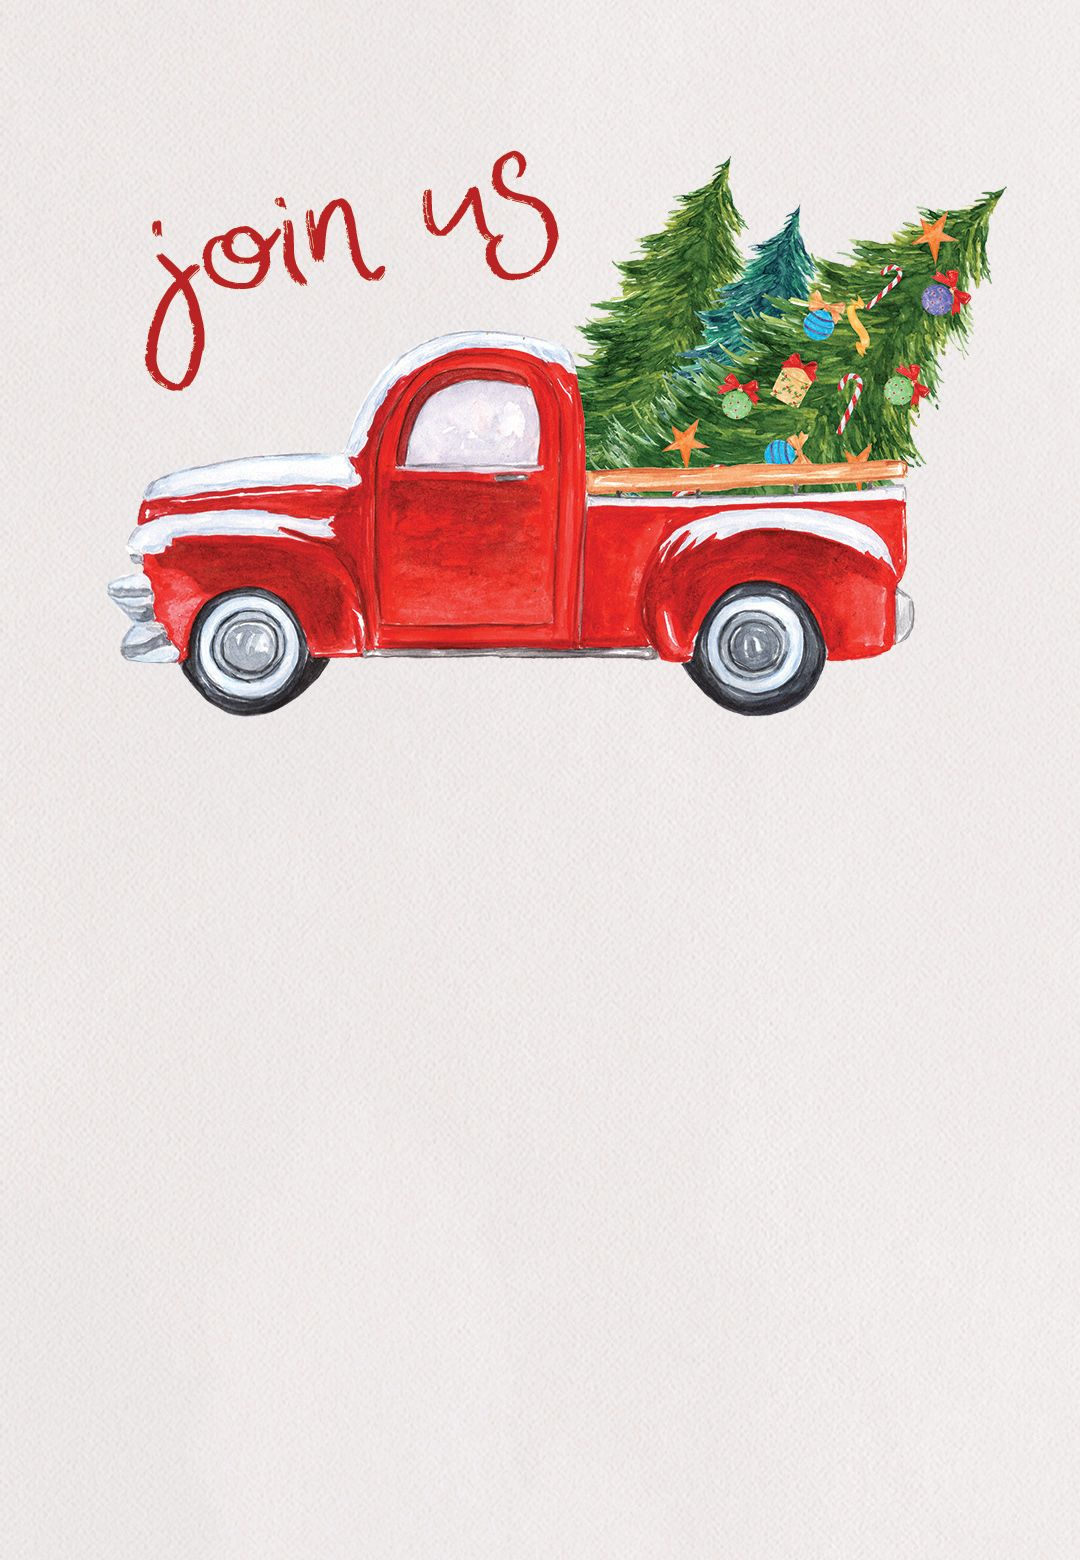 Red Truck Christmas Invitation Template Free Greet Christmas Invitations Template Christmas Party Invitation Template Free Christmas Invitation Templates